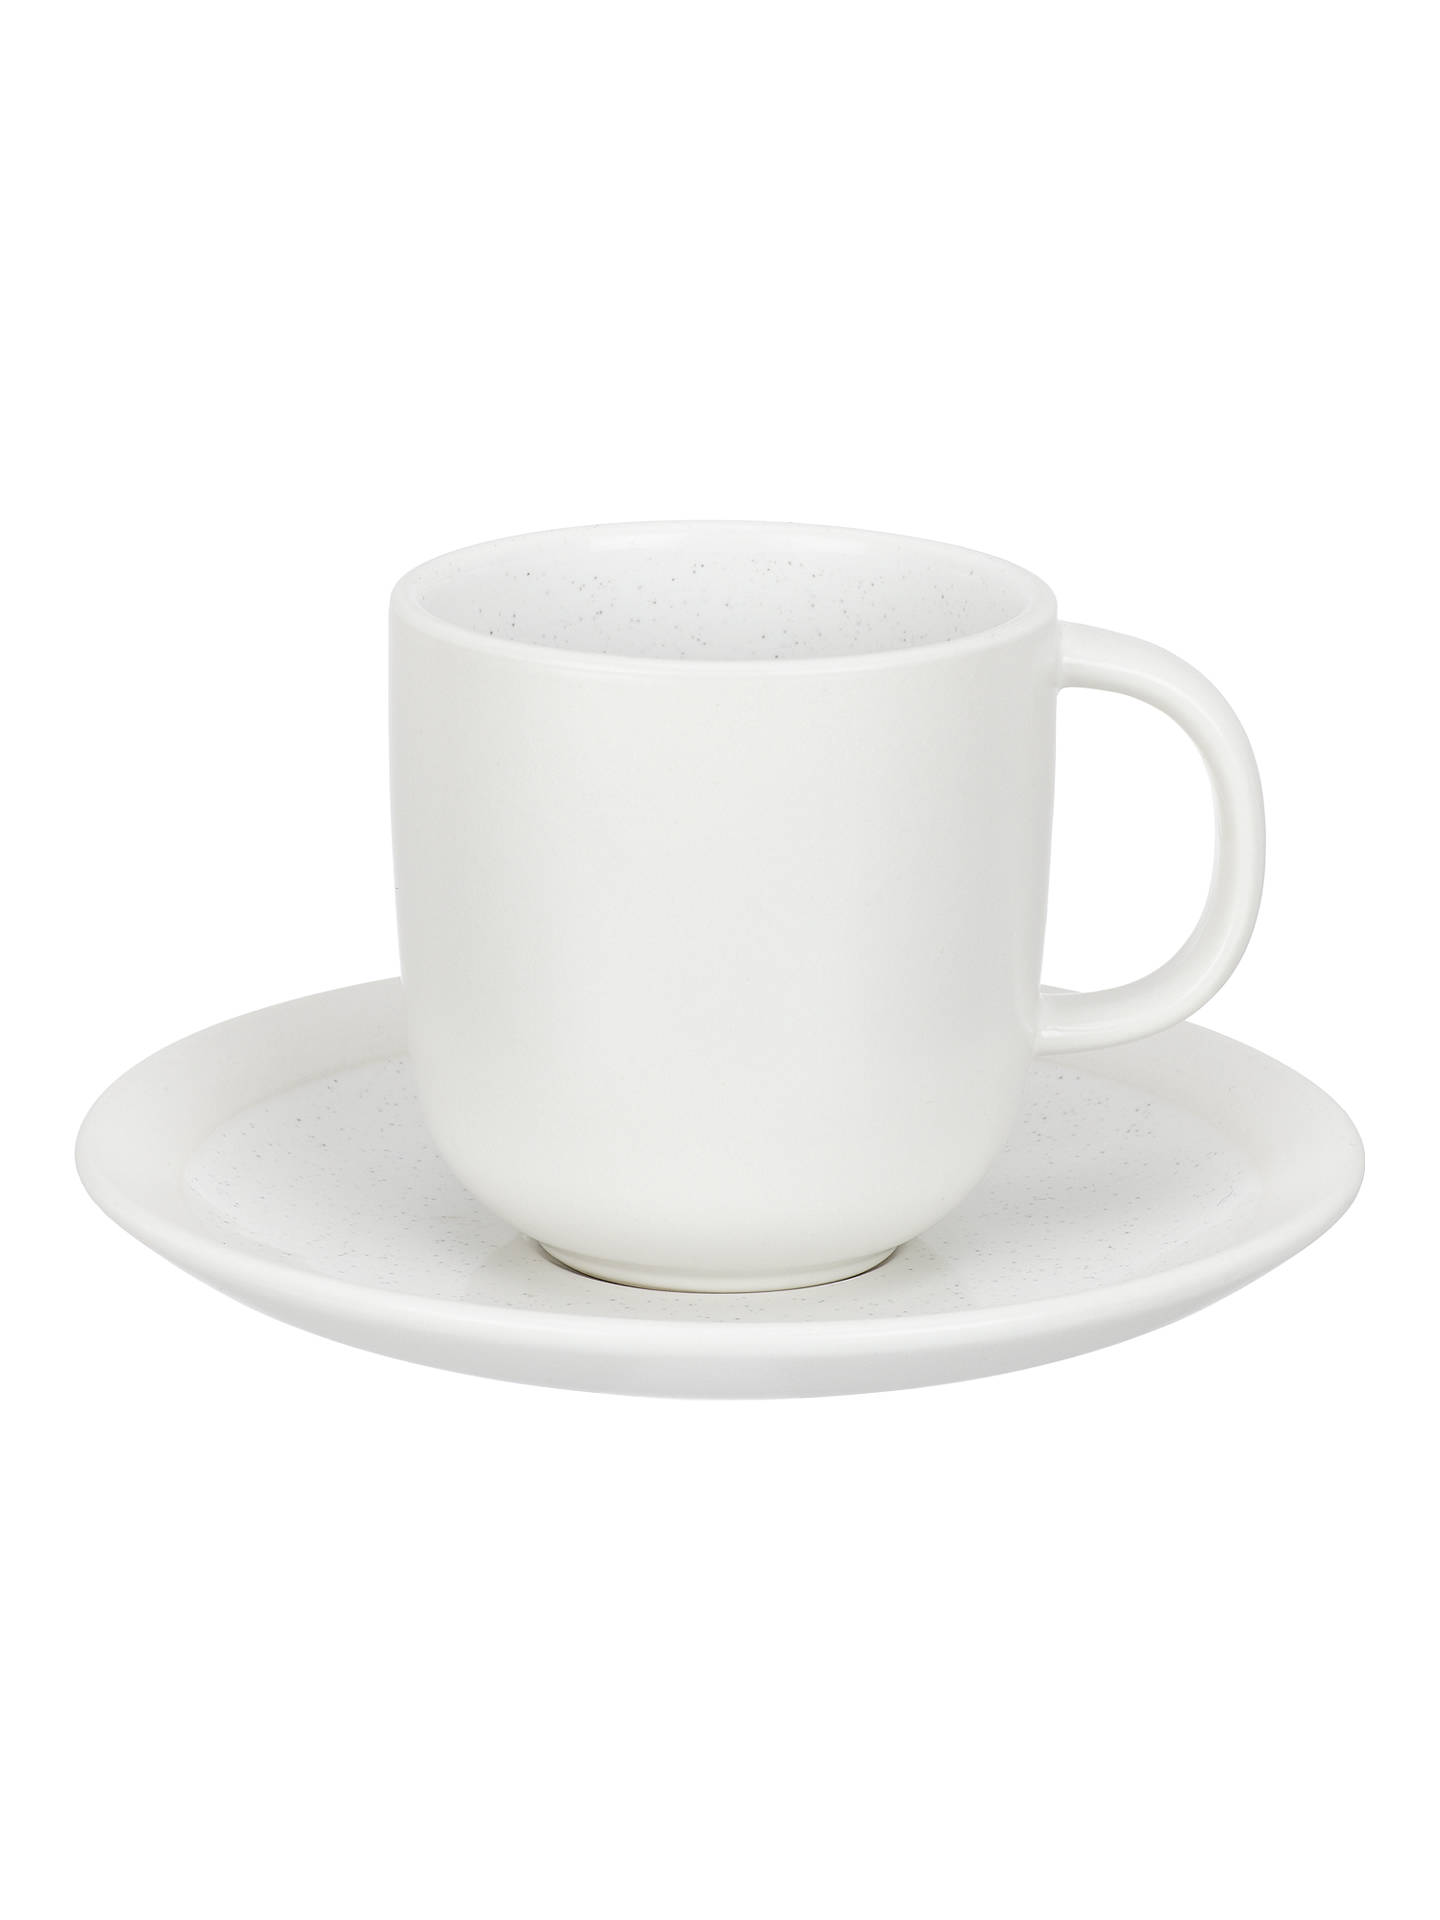 Buy John Lewis & Partners Glaze Speckle Cup and Saucer, 180ml, White Online at johnlewis.com